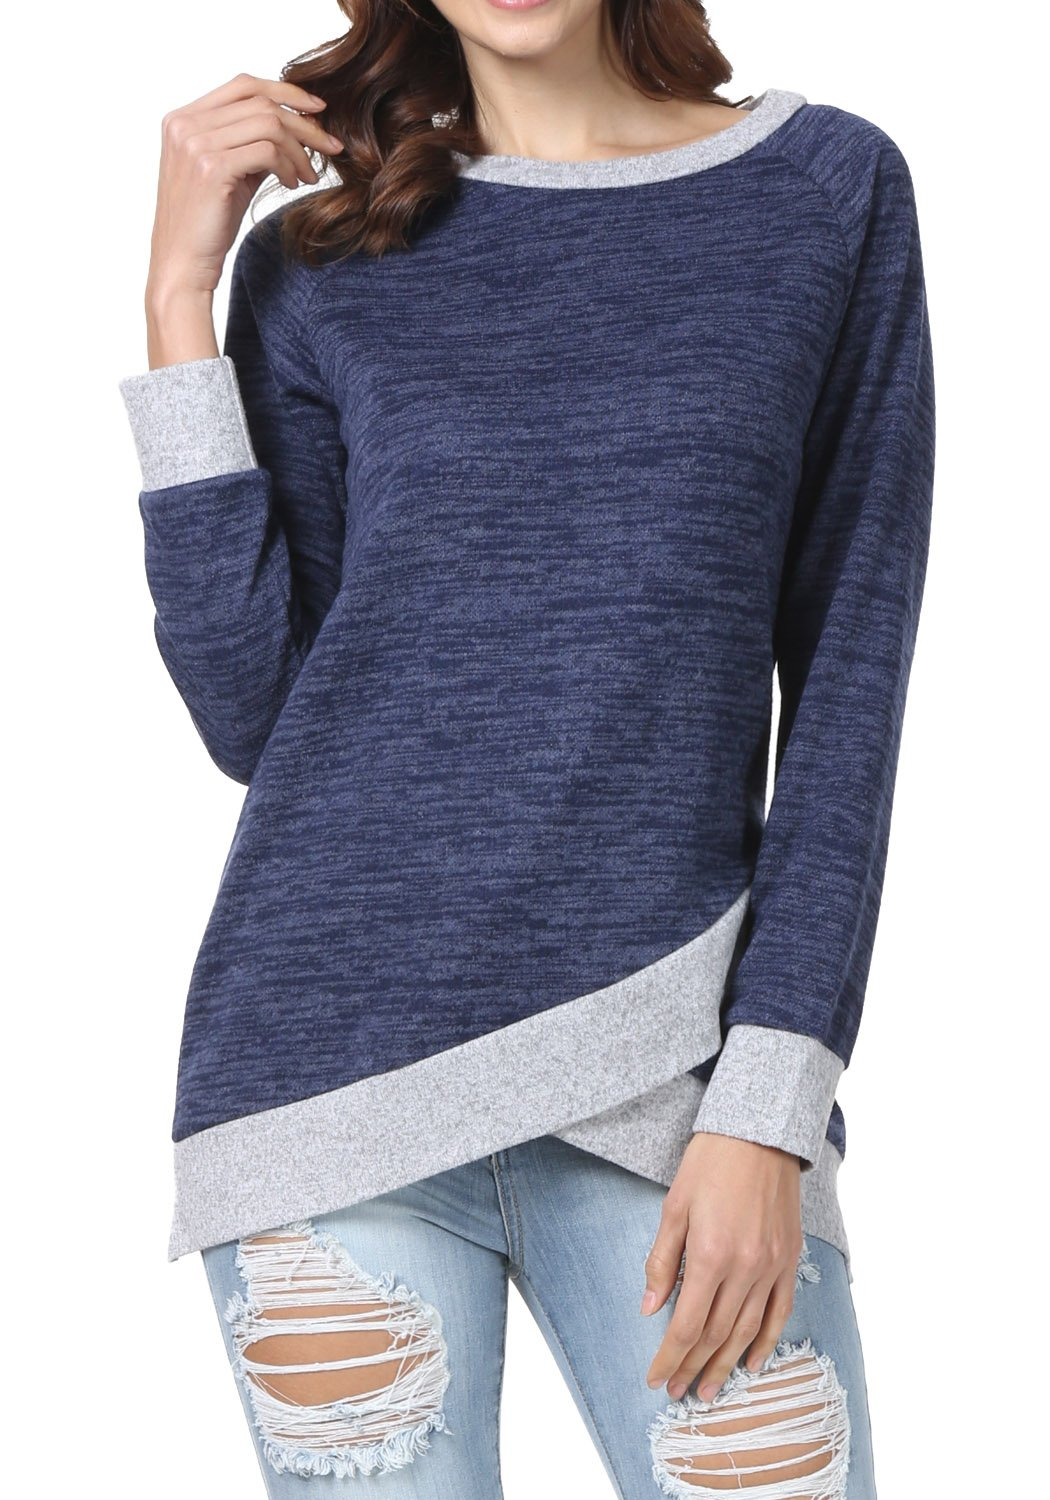 levaca Womens Long Sleeve O Neck Cross Loose Fit Casual Blouse Tunic Tops Blue L